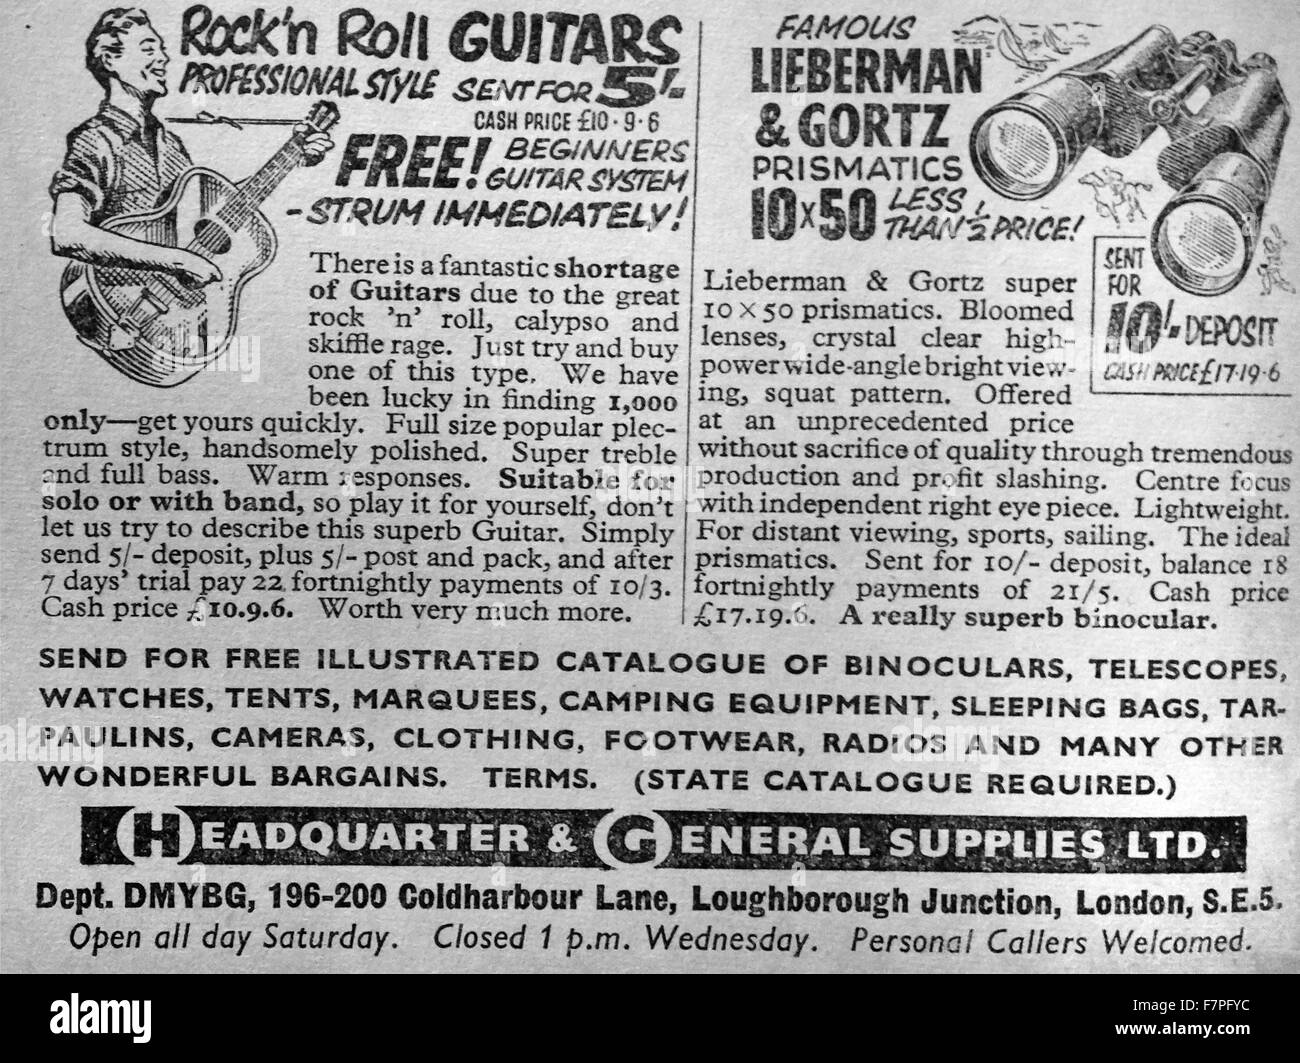 adverts for guitars and binoculars 1930's - Stock Image